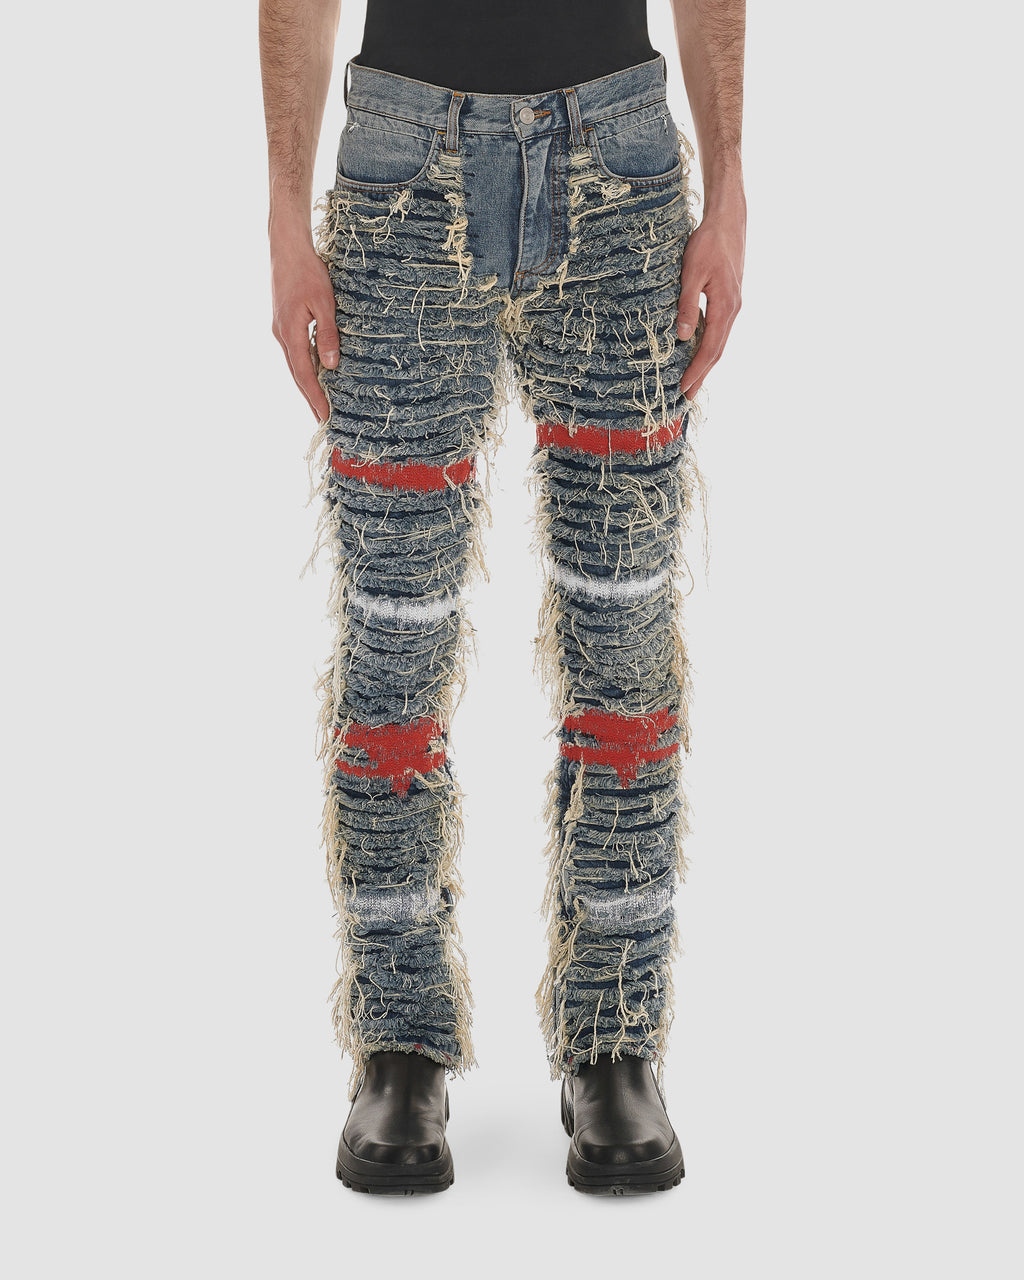 BLACKMEANS SHREDDED DENIM